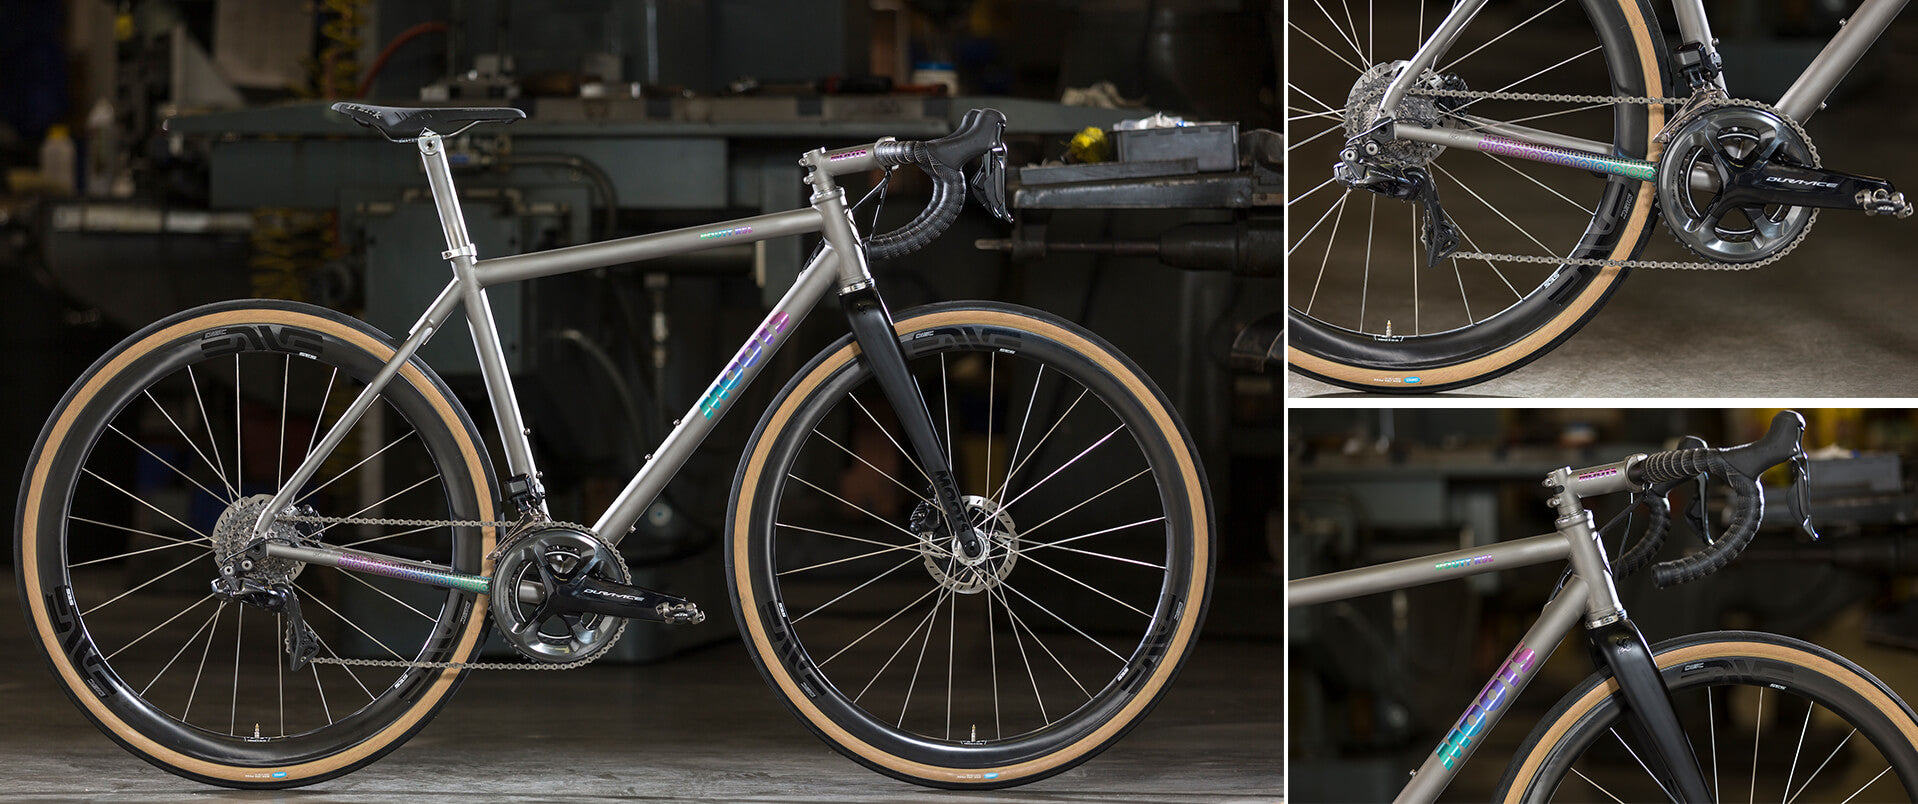 Moots Routt RSL - Contender Bicycles